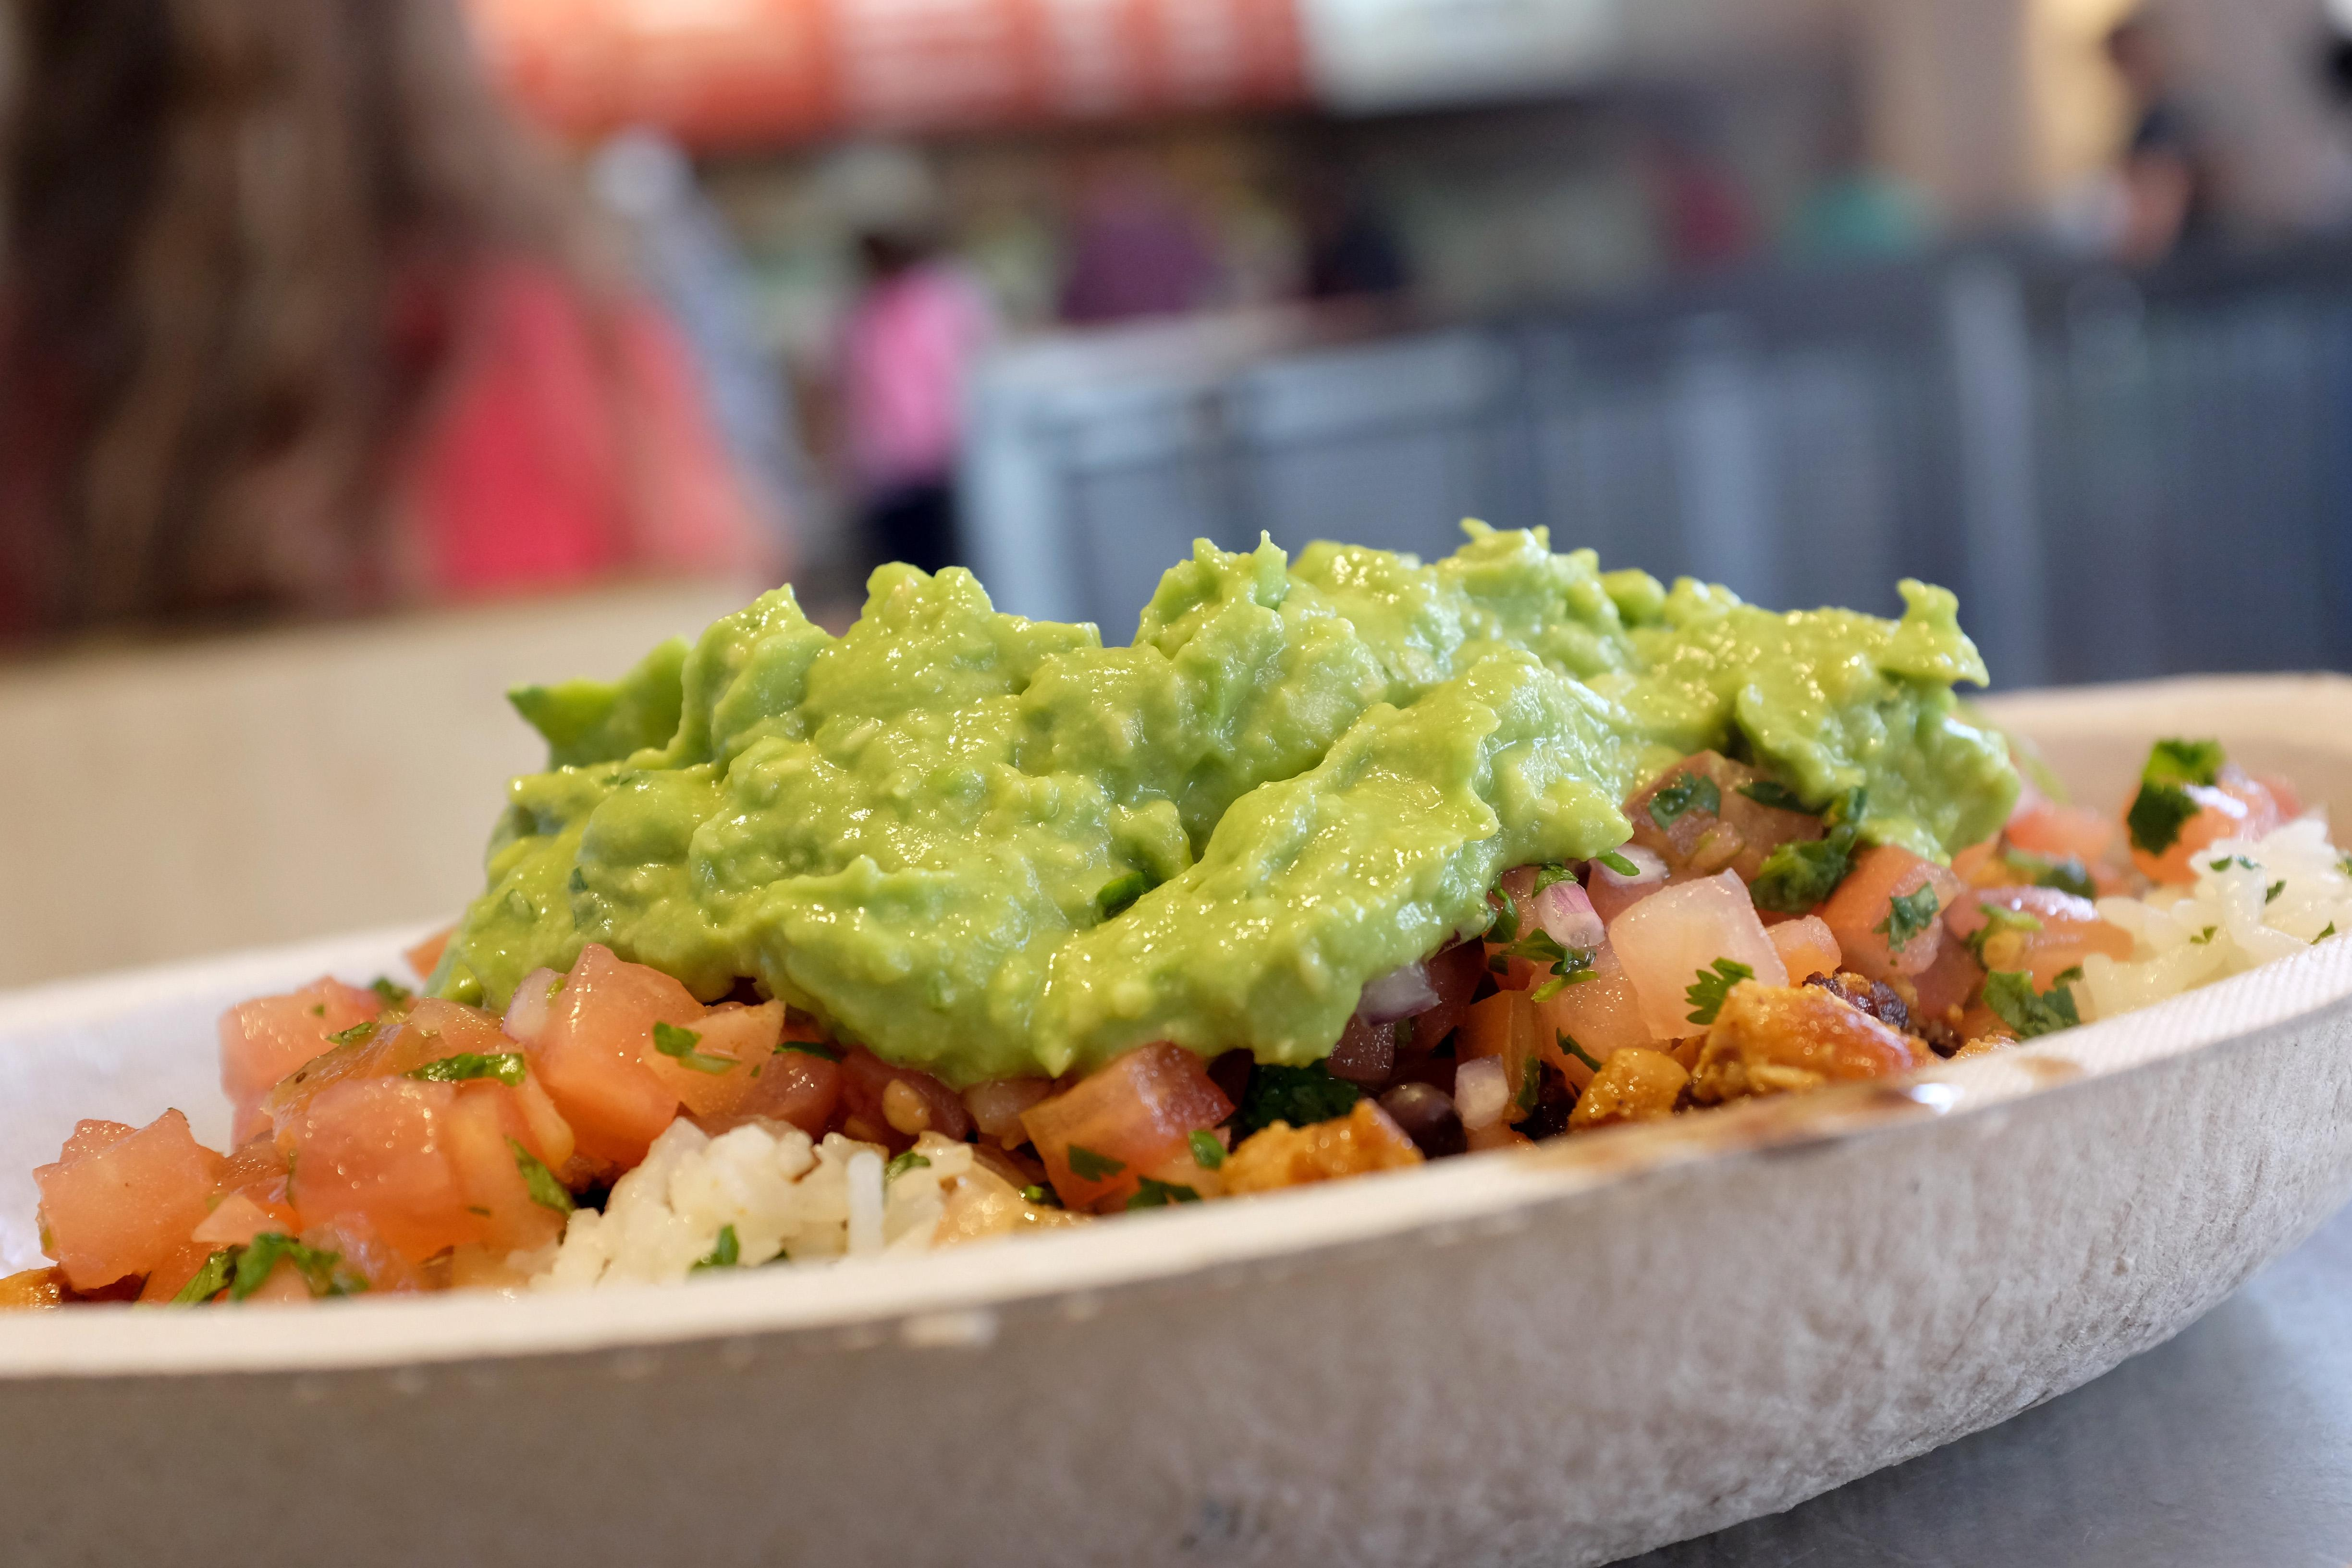 Chipotle reports strong Q1 sales, withdraws guidance